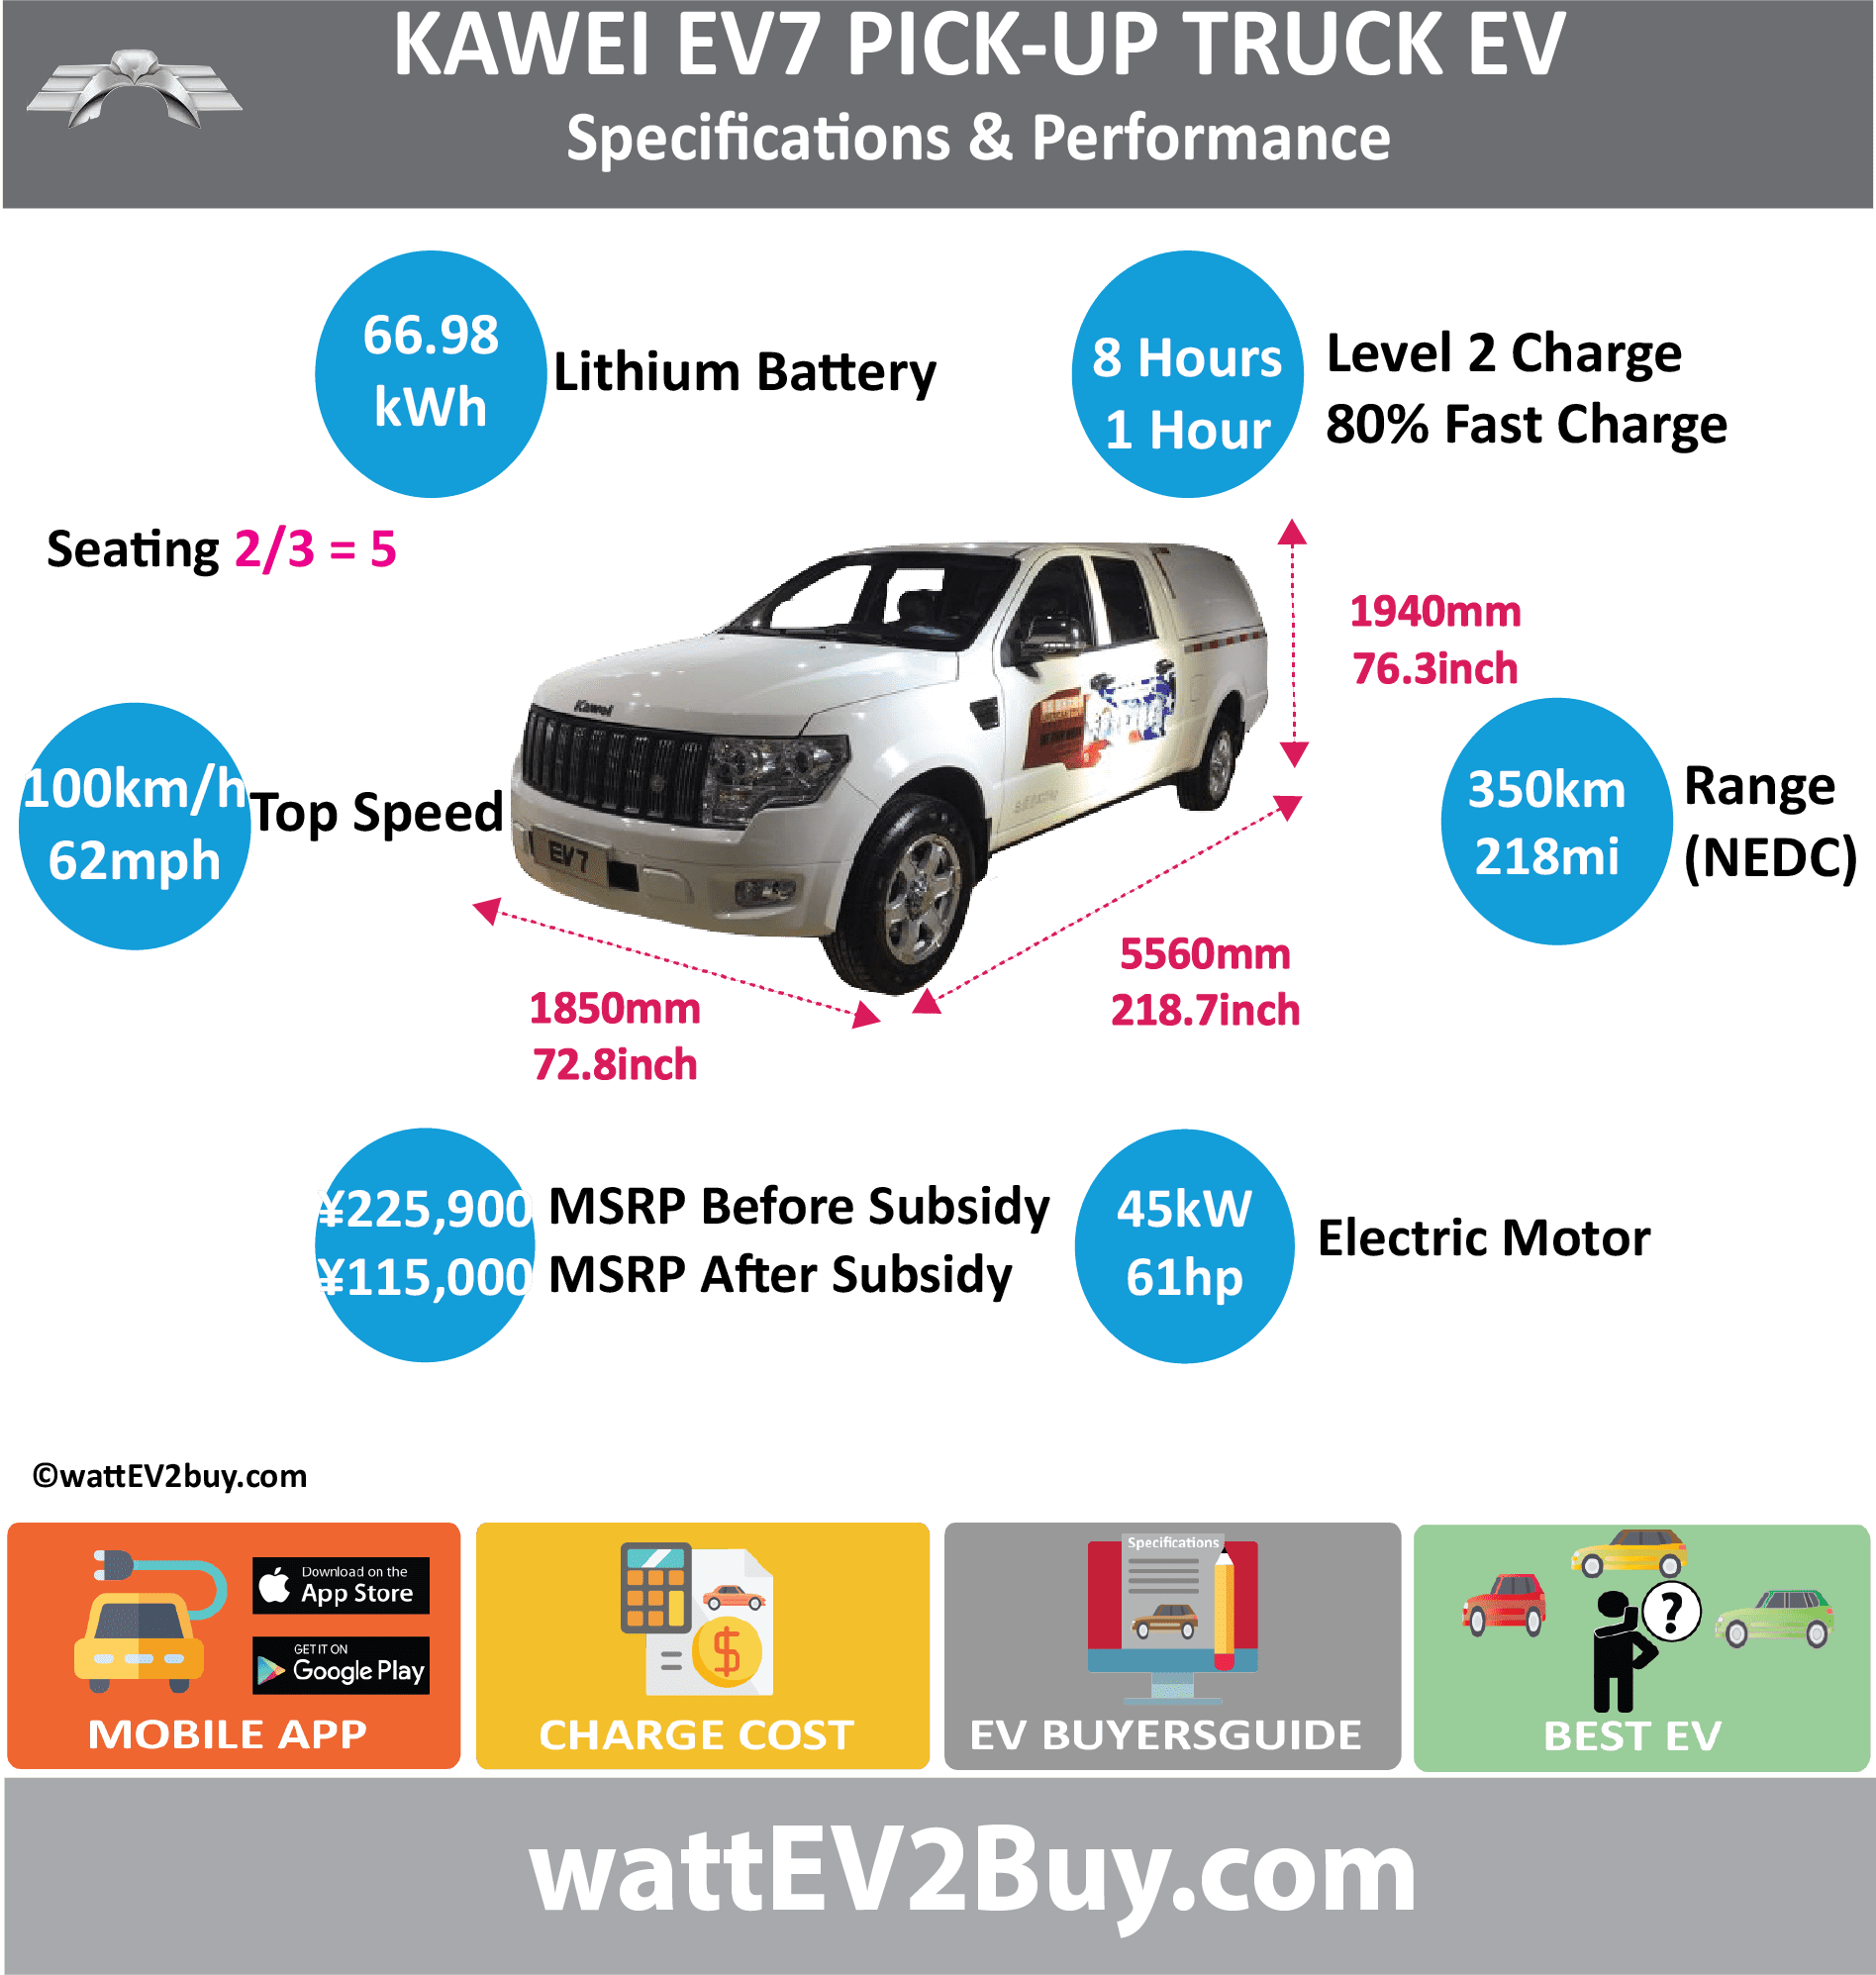 Kawei EV7 Pick-up Truck EV Specs	 wattev2Buy.com	2018 Battery Chemistry	Sanyuanli Battery Battery Capacity kWh	66.98 Battery Nominal rating kWh	 Voltage V	 Amps Ah	 Cells	 Modules	 Efficiency	 Weight (kg)	500 Cell Type	 SOC	 Cooling	 Cycles	 Battery Type	 Depth of Discharge (DOD)	 Energy Density Wh/kg	 Battery Manufacturer	Huizhou billion Wei Lithium Co., Ltd Battery Warranty - years	 Battery Warranty - km	 Battery Warranty - miles	 Battery Electric Range - at constant 38mph	 Battery Electric Range - at constant 60km/h	 Battery Electric Range - NEDC Mi	218.75 Battery Electric Range - NEDC km	350 Battery Electric Range - CCM Mi	 Battery Electric Range - CCM km	 Battery Electric Range - EPA Mi	 Battery Electric Range - EPA km	 Electric Top Speed - mph	62 Electric Top Speed - km/h	100 Acceleration 0 - 100km/h sec	 Acceleration 0 - 50km/h sec	 Acceleration 0 - 62mph sec	 Acceleration 0 - 60mph sec	 Acceleration 0 - 37.2mph sec	 Wireless Charging	 Direct Current Fast Charge kW	 Charger Efficiency	 Onboard Charger kW	 Onboard Charger Optional kW	 Charging Cord - amps	 Charging Cord - volts	 LV 1 Charge kW	 LV 1 Charge Time (Hours)	 LV 2 Charge kW	 LV 2 Charge Time (Hours)	8 LV 3 CCS/Combo kW	 LV 3 Charge Time (min to 70%)	 LV 3 Charge Time (min to 80%)	1 LV 3 Charge Time (mi)	 LV 3 Charge Time (km)	 Supercharger	 Charging System kW	 Charger Output	 Charge Connector	 Power Outlet kW	 Power Outlet Amps	 MPGe Combined - miles	 MPGe Combined - km	 MPGe City - miles	 MPGe City - km	 MPGe Highway - miles	 MPGe Highway - km	 Max Power - hp (Electric Max)	143 Max Power - kW  (Electric Max)	105 Max Torque - lb.ft  (Electric Max)	 Max Torque - N.m  (Electric Max)	110 Drivetrain	 Generator	 Motor Type	 Electric Motor Manufacturer	Shanghai Dajun Power Control Technology Co., Ltd. Electric Motor Output kW	45 Electric Motor Output hp	61 Transmission	 Electric Motor - Rear	 Max Power - hp (Rear)	 Max Power - kW (Rear)	 Max Torque - lb.ft (Rear)	 Max Torque - N.m (Rear)	 Electric Motor - Front	 Max Power - hp (Front)	 Max Power - kW (Front)	 Max Torque - lb.ft (Front)	 Max Torque - N.m (Front)	 Energy Consumption kWh/100km	 Energy Consumption kWh/100miles	 Deposit	 GB Battery Lease per month	 EU Battery Lease per month	 MSRP (expected)	 EU MSRP (before incentives & destination)	 GB MSRP (before incentives & destination)	 US MSRP (before incentives & destination)	 CHINA MSRP (before incentives & destination)	 ¥225,900.00  MSRP after incentives	 ¥115,000.00  Vehicle	 Trims	 Doors	 Seating	5 Dimensions	 Luggage (L)	4500 GVWR (kg)	3325 GVWR (lbs)	 Curb Weight (kg)	2350 Curb Weight (lbs)	 Payload Capacity (kg)	750 Payload Capacity (lbs)	 Towing Capacity (lbs)	 Max Load Height (m)	 Ground Clearance (inc)	 Ground Clearance (mm)	 Lenght (mm)	5560 Width (mm)	1850 Height (mm)	1940 Wheelbase (mm)	3500 Lenght (inc)	218.7 Width (inc)	72.8 Height (inc)	76.3 Wheelbase (inc)	137.7 Other	 Utility Factor	 Auto Show Unveil	 Availability	 Market	 Segment	 Class	 Safety Level	 Unveiled	 Relaunch	 First Delivery	 Chassis designed	 Based On	 AKA	 Self-Driving System	 SAE Autonomous Level	 Connectivity	 Unique	 Extras	 Incentives	 Home Charge Installation	 Public Charging	 Subsidy	 Chinese Name	卡威EV7 Model Code	JNQ5036XXYBEV